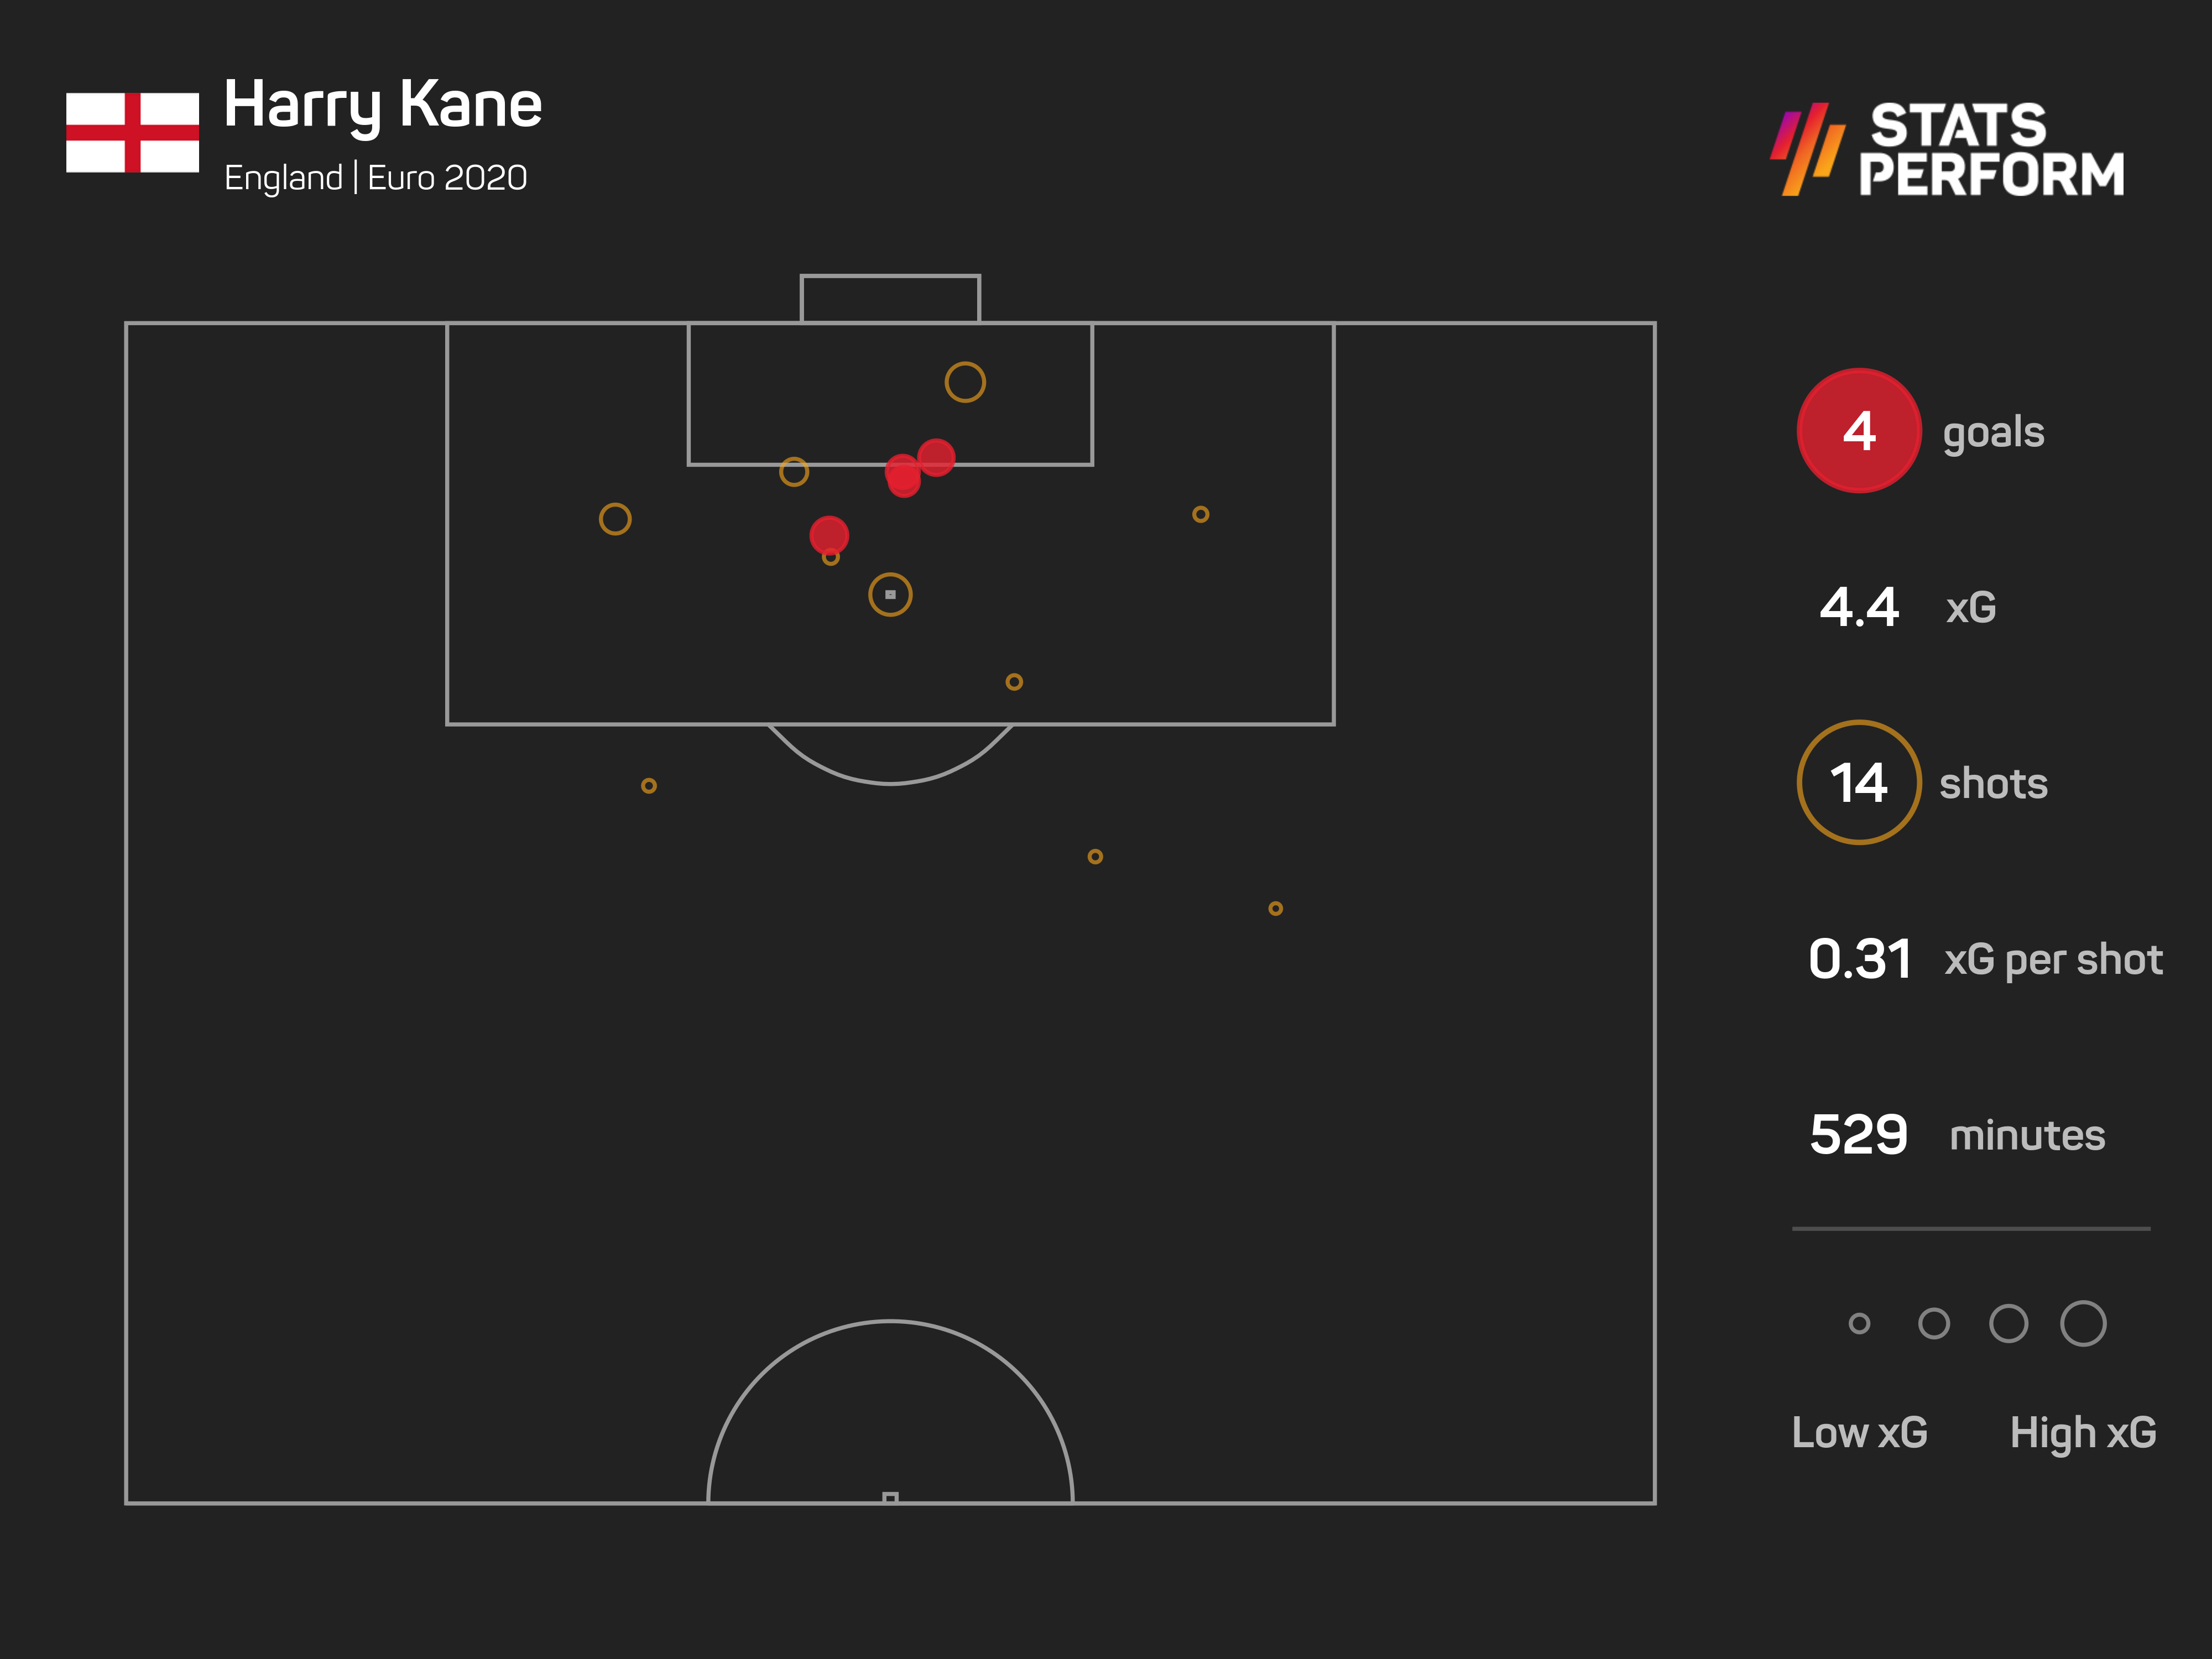 Harry Kane has found his form in the past three games